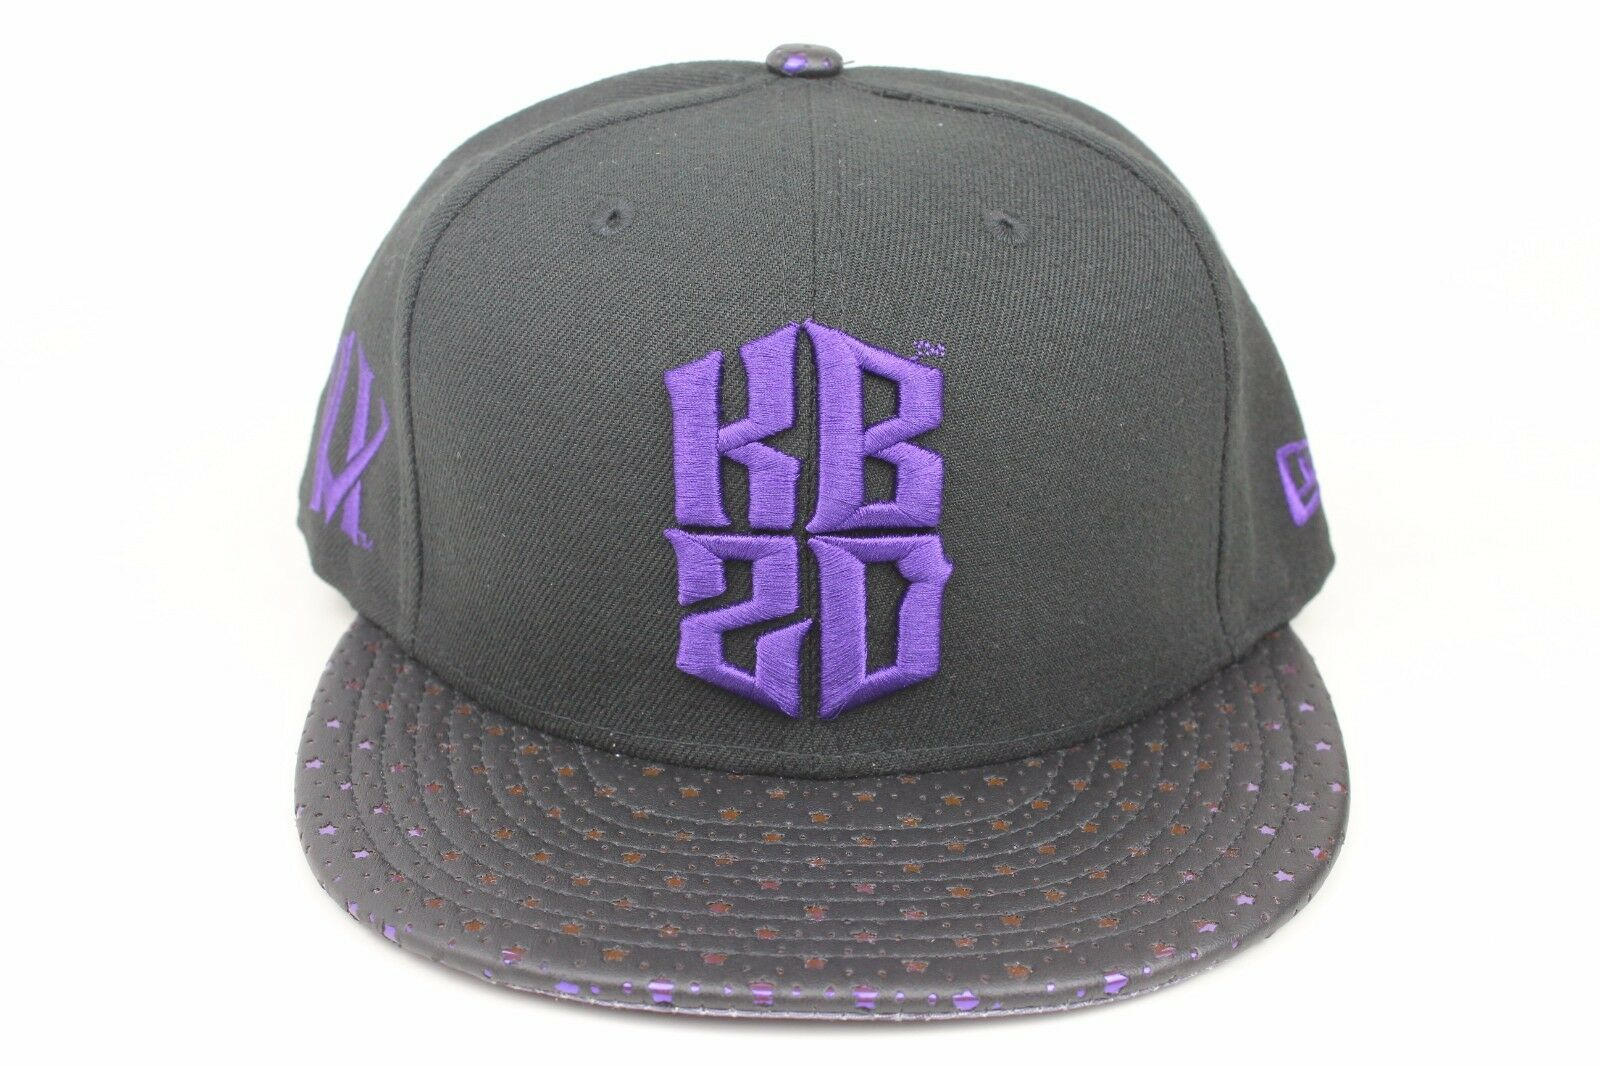 Kobe Bryant KB20 Hero Villain / Visor Black / Star Visor / New Era 9Fifty Snapback Mamba 223d36